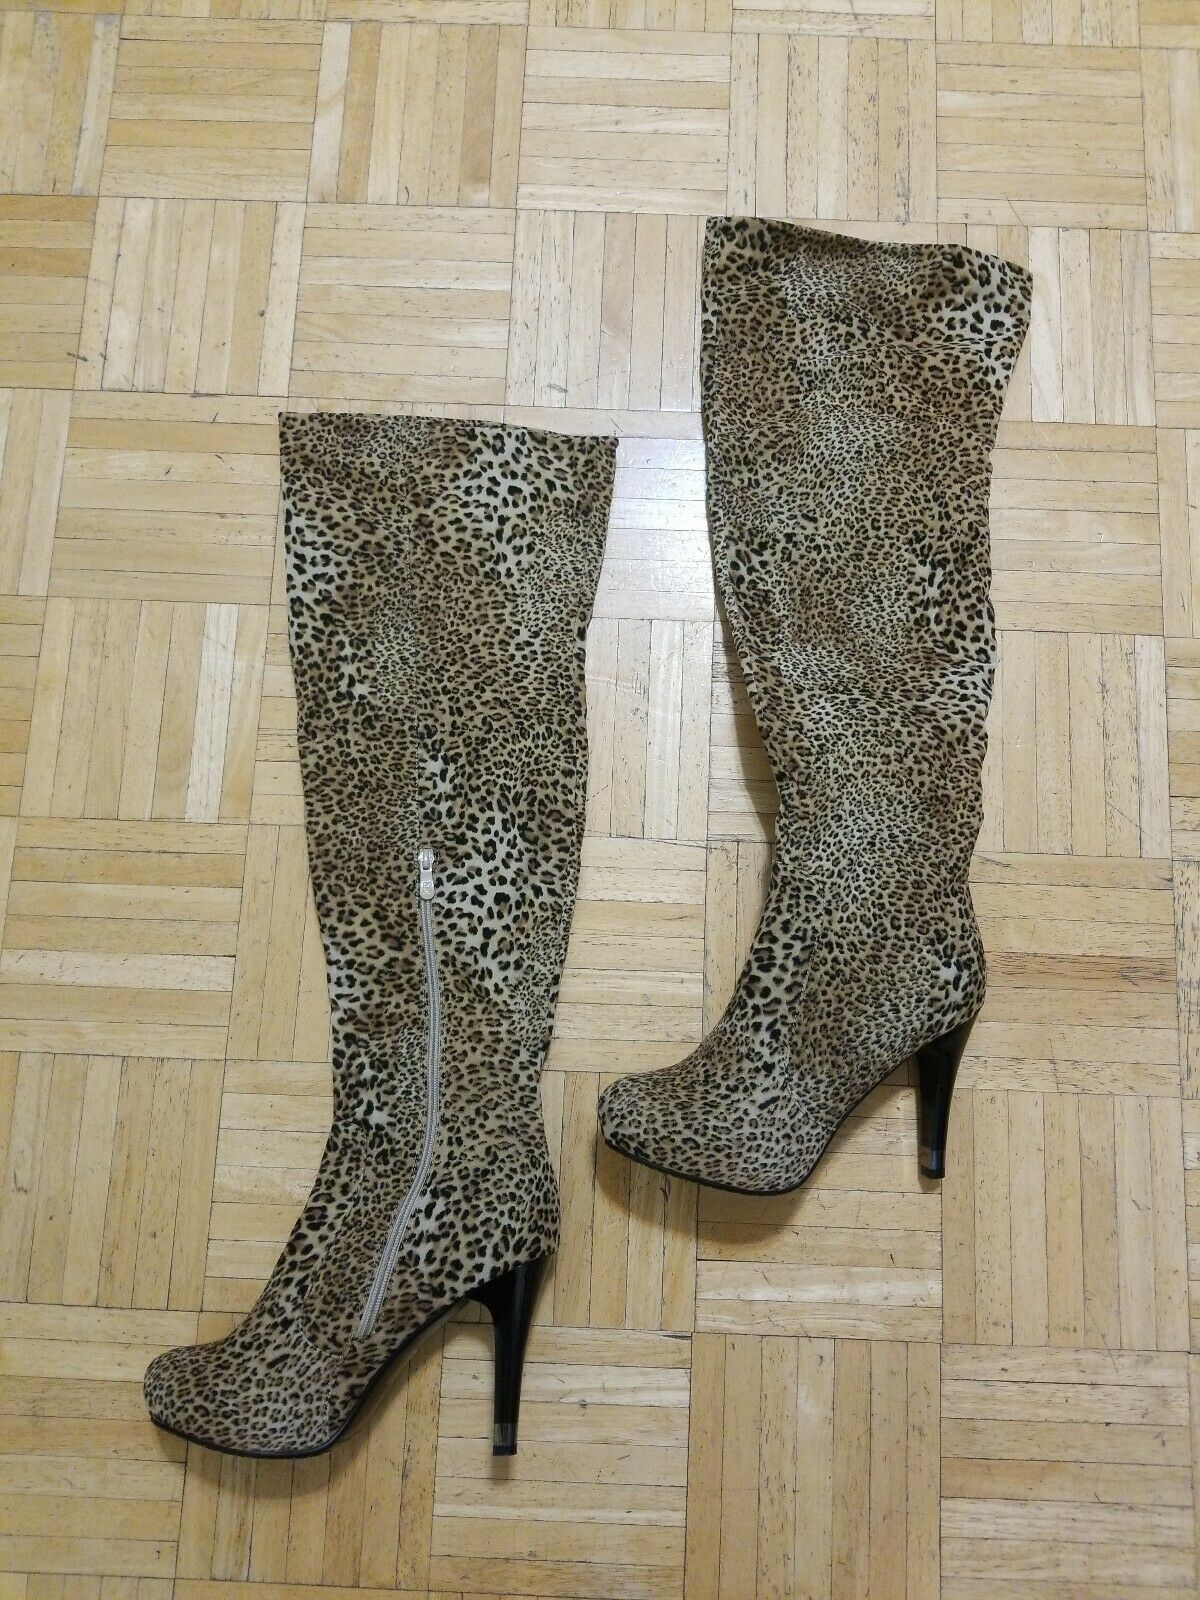 MONROE & MAIN LEOPARD PRINT STILETTO OVER-THE-KNEE BOOTS SIZE 9.5 NEW